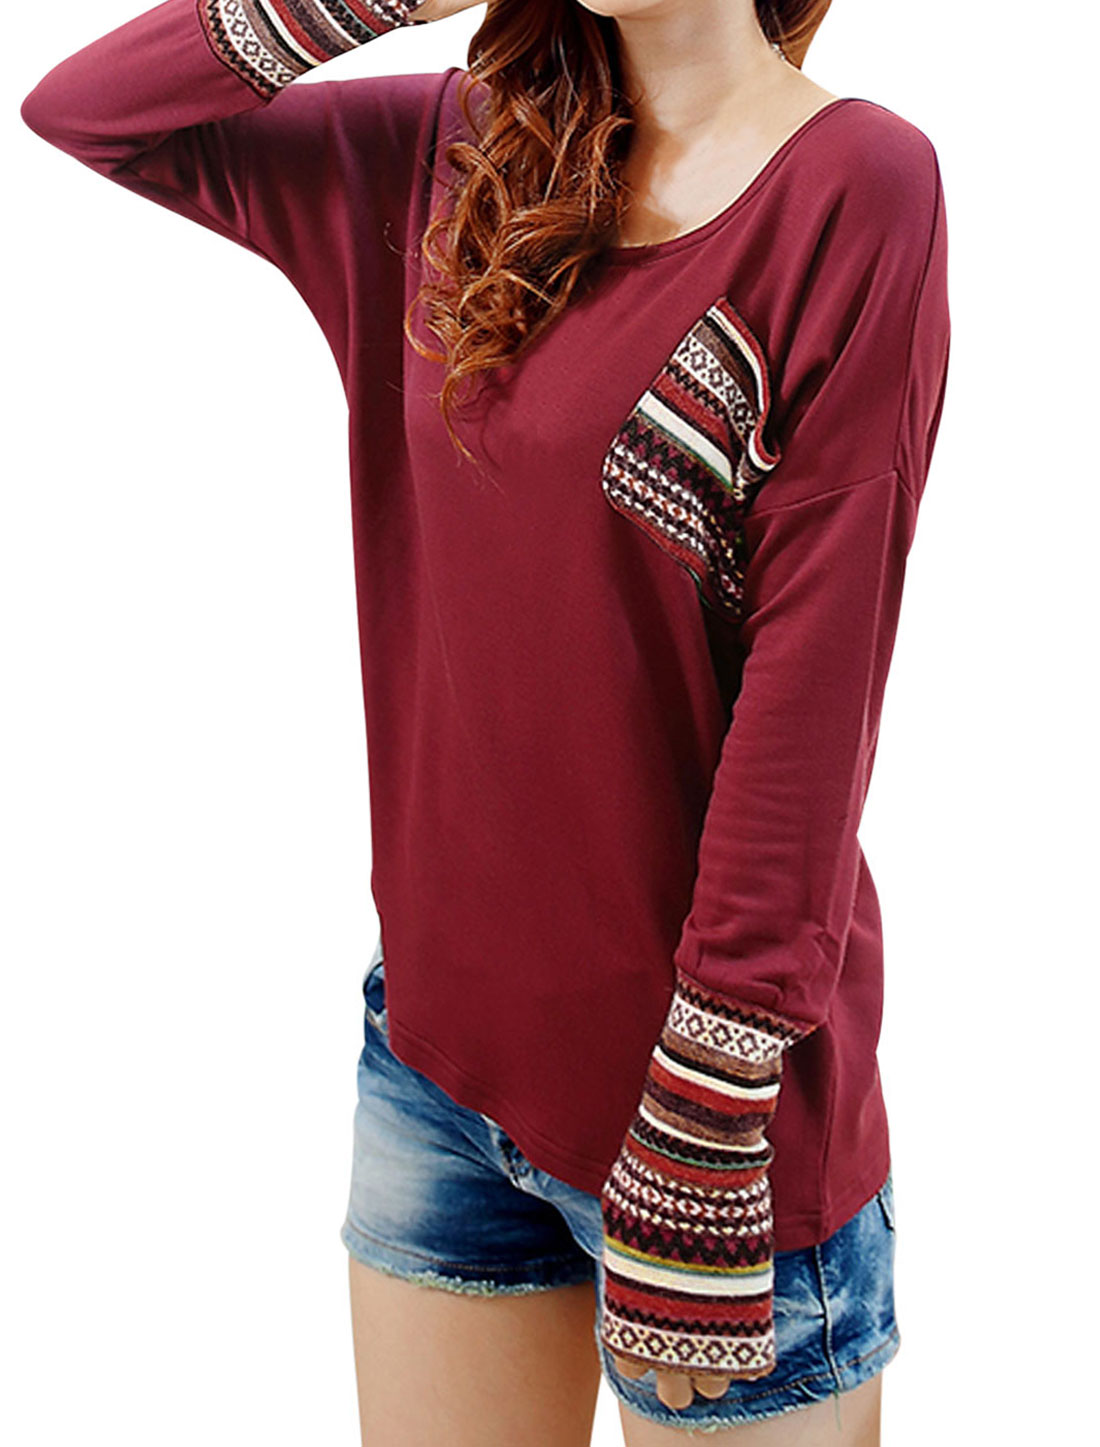 Lady Long Sleeve Stripes Pattern Panel Leisure Shirt Burgundy S